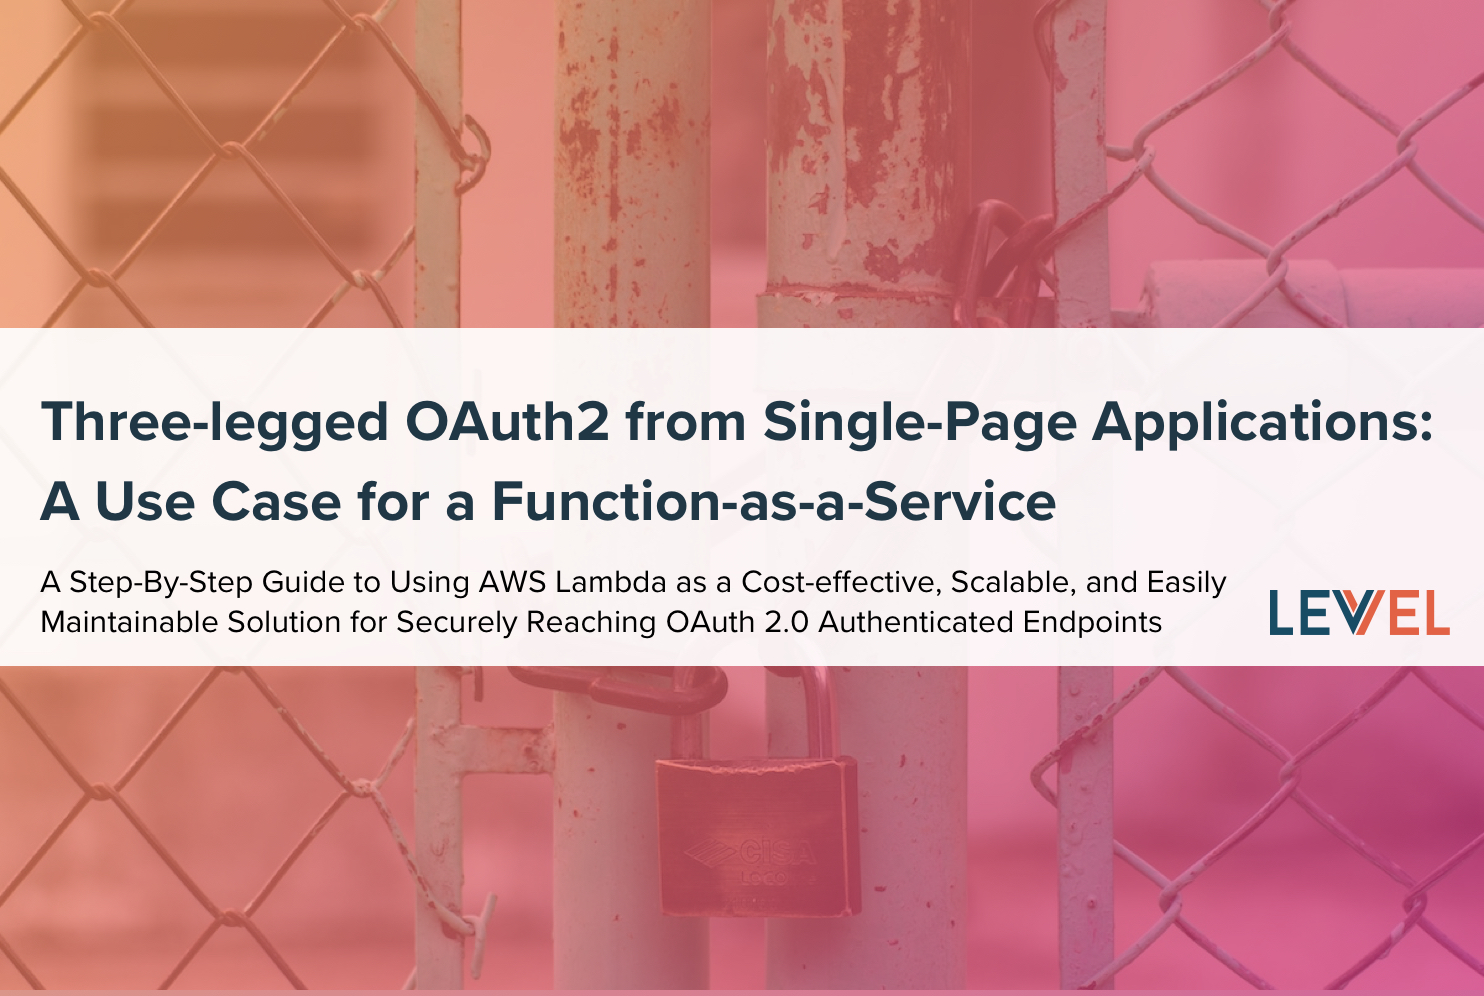 Three-legged OAuth2 from Single-Page Applications: A Use Case for a Function-as-a-Service